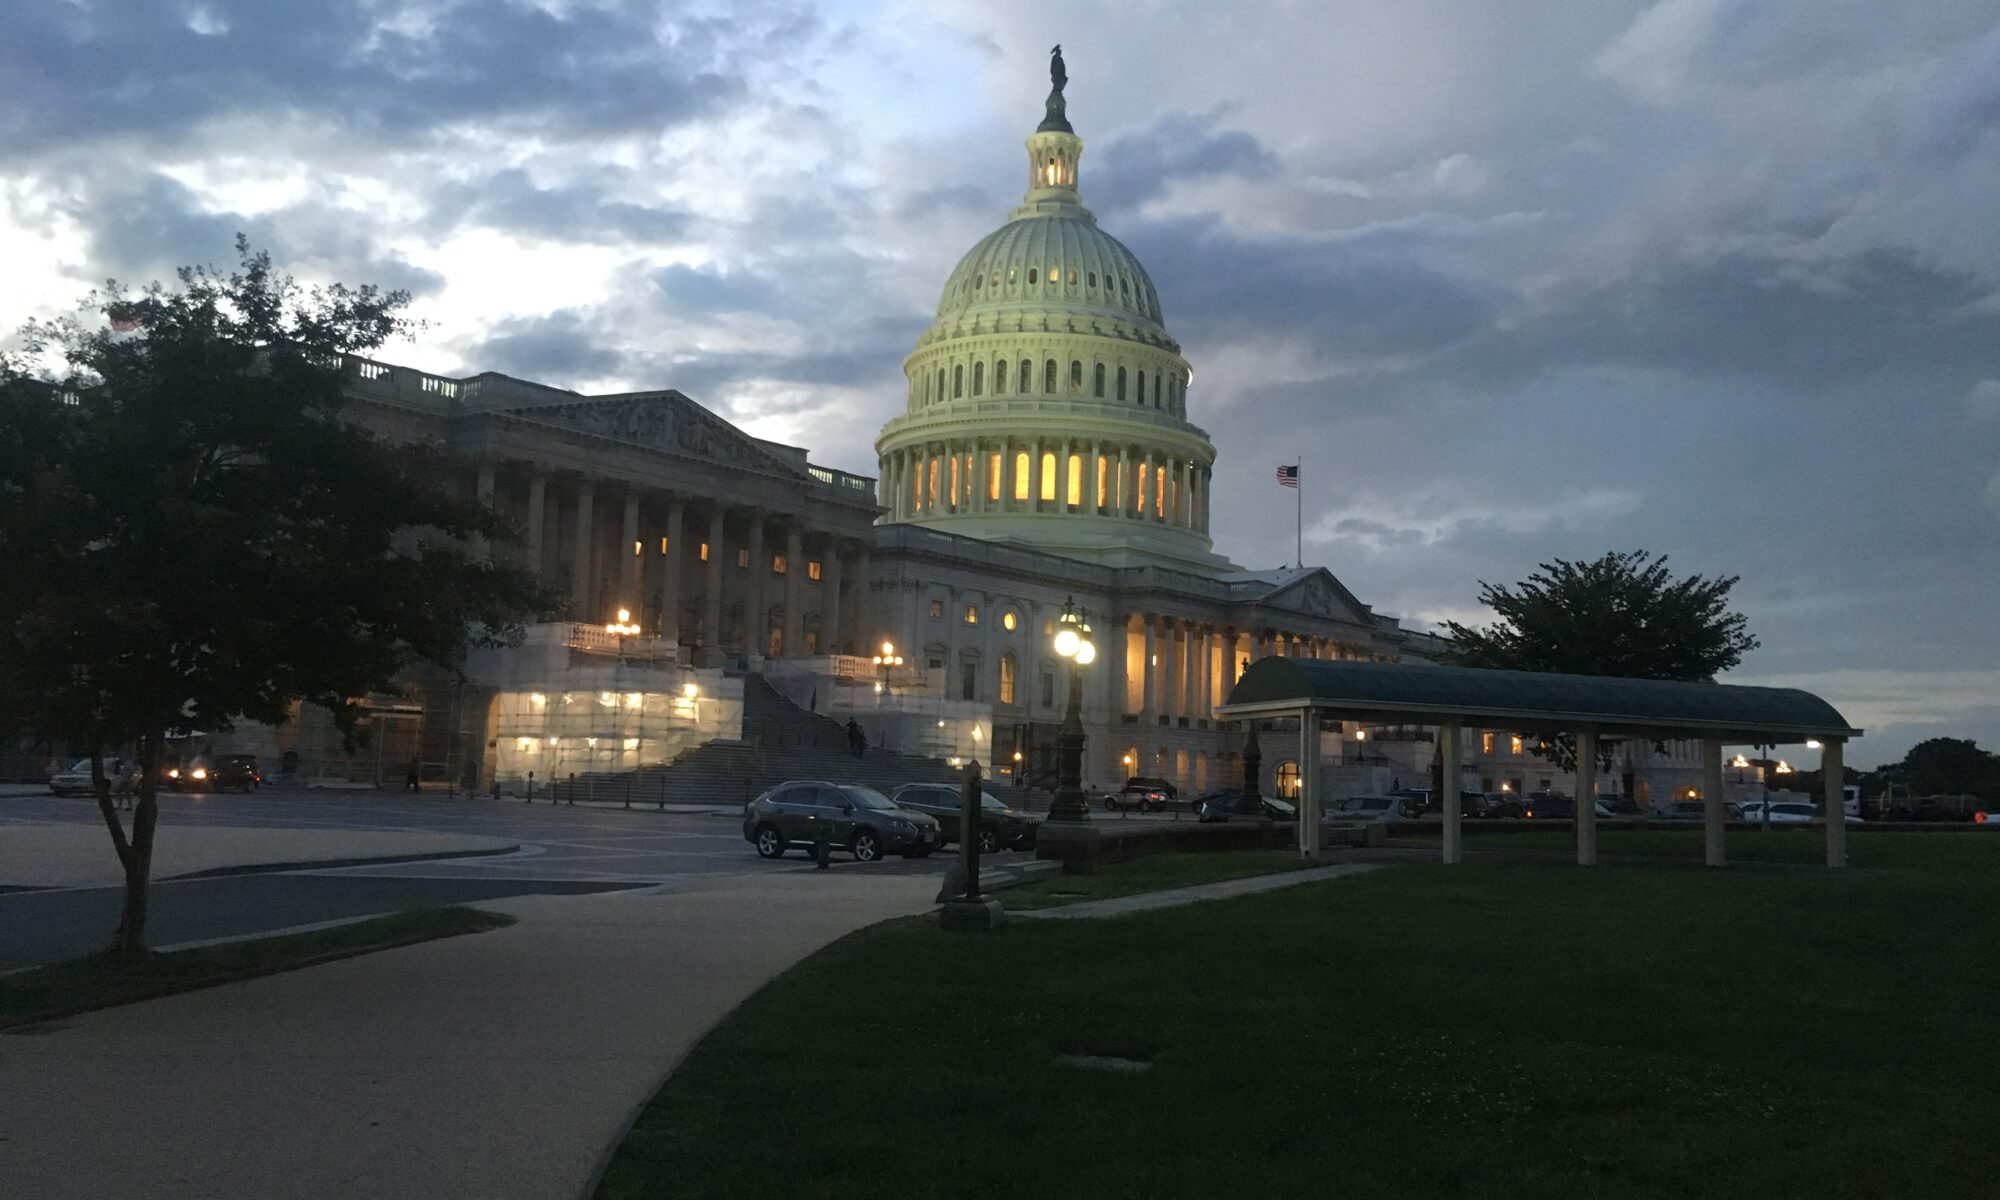 The US Capitol Building dome at dusk